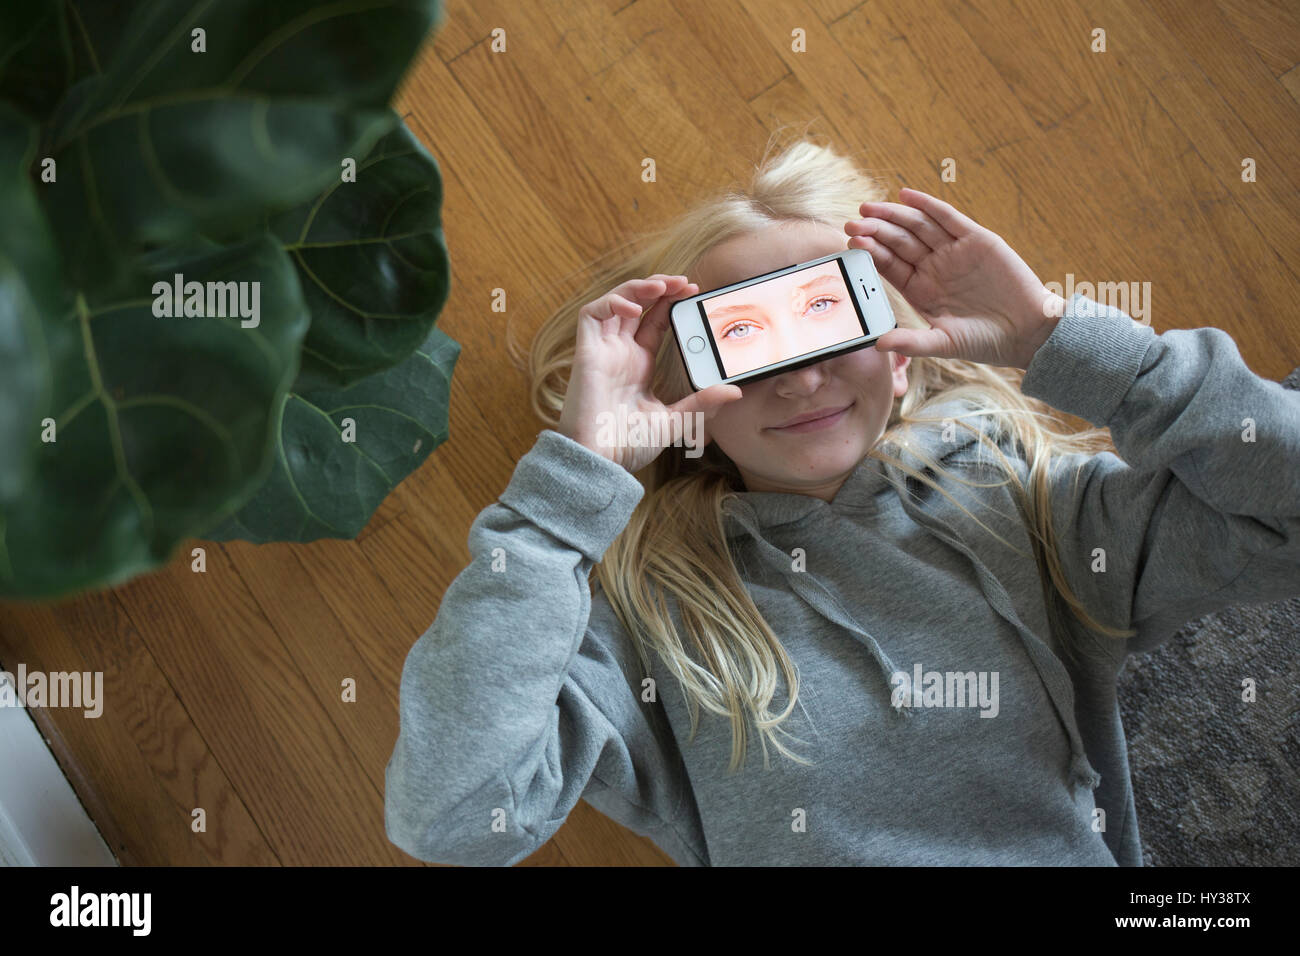 Sweden, Girl (12-13) lying on floor and covering eyes with smart phone with eyes on screen - Stock Image